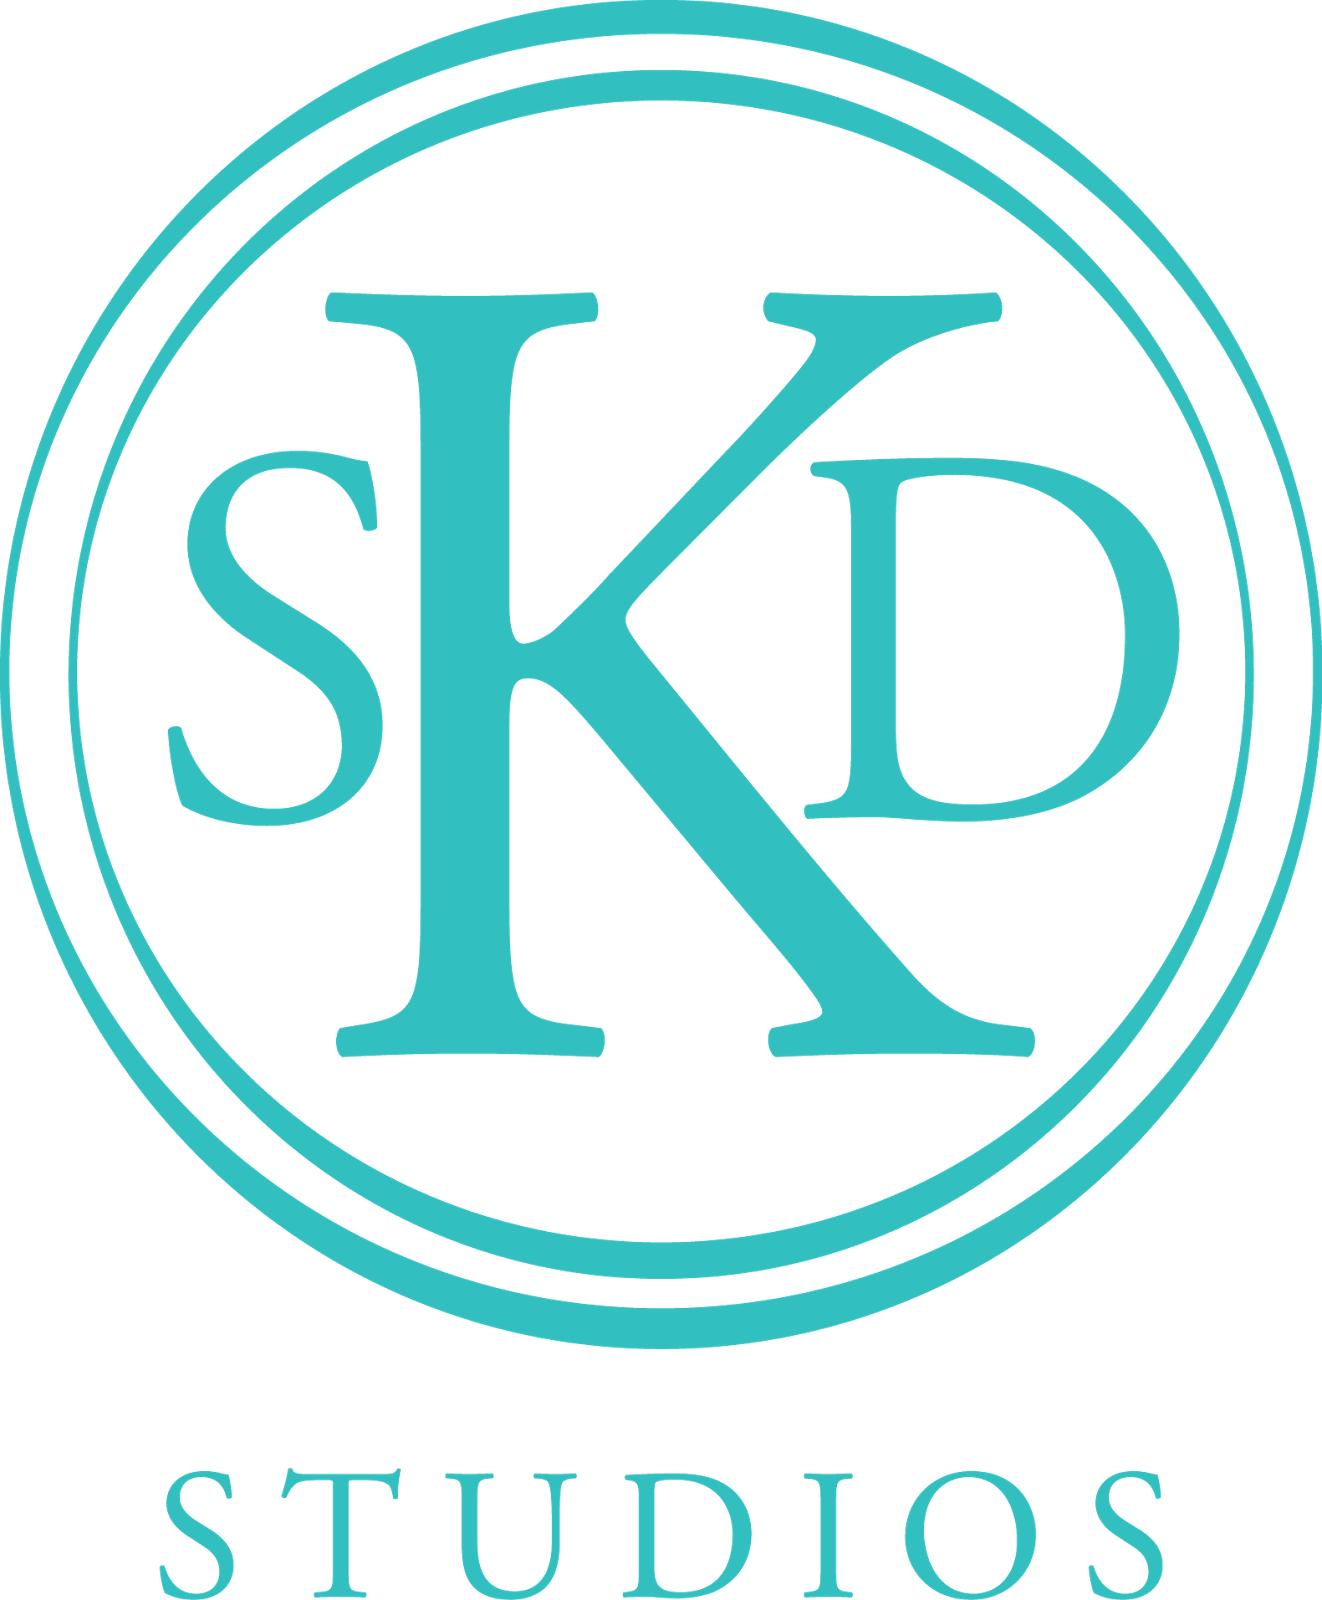 Skd studios southern california help you discover why you should there is a lot that goes into designing a space to greatness remodeling color fabric accessories texture the list goes on and on biocorpaavc